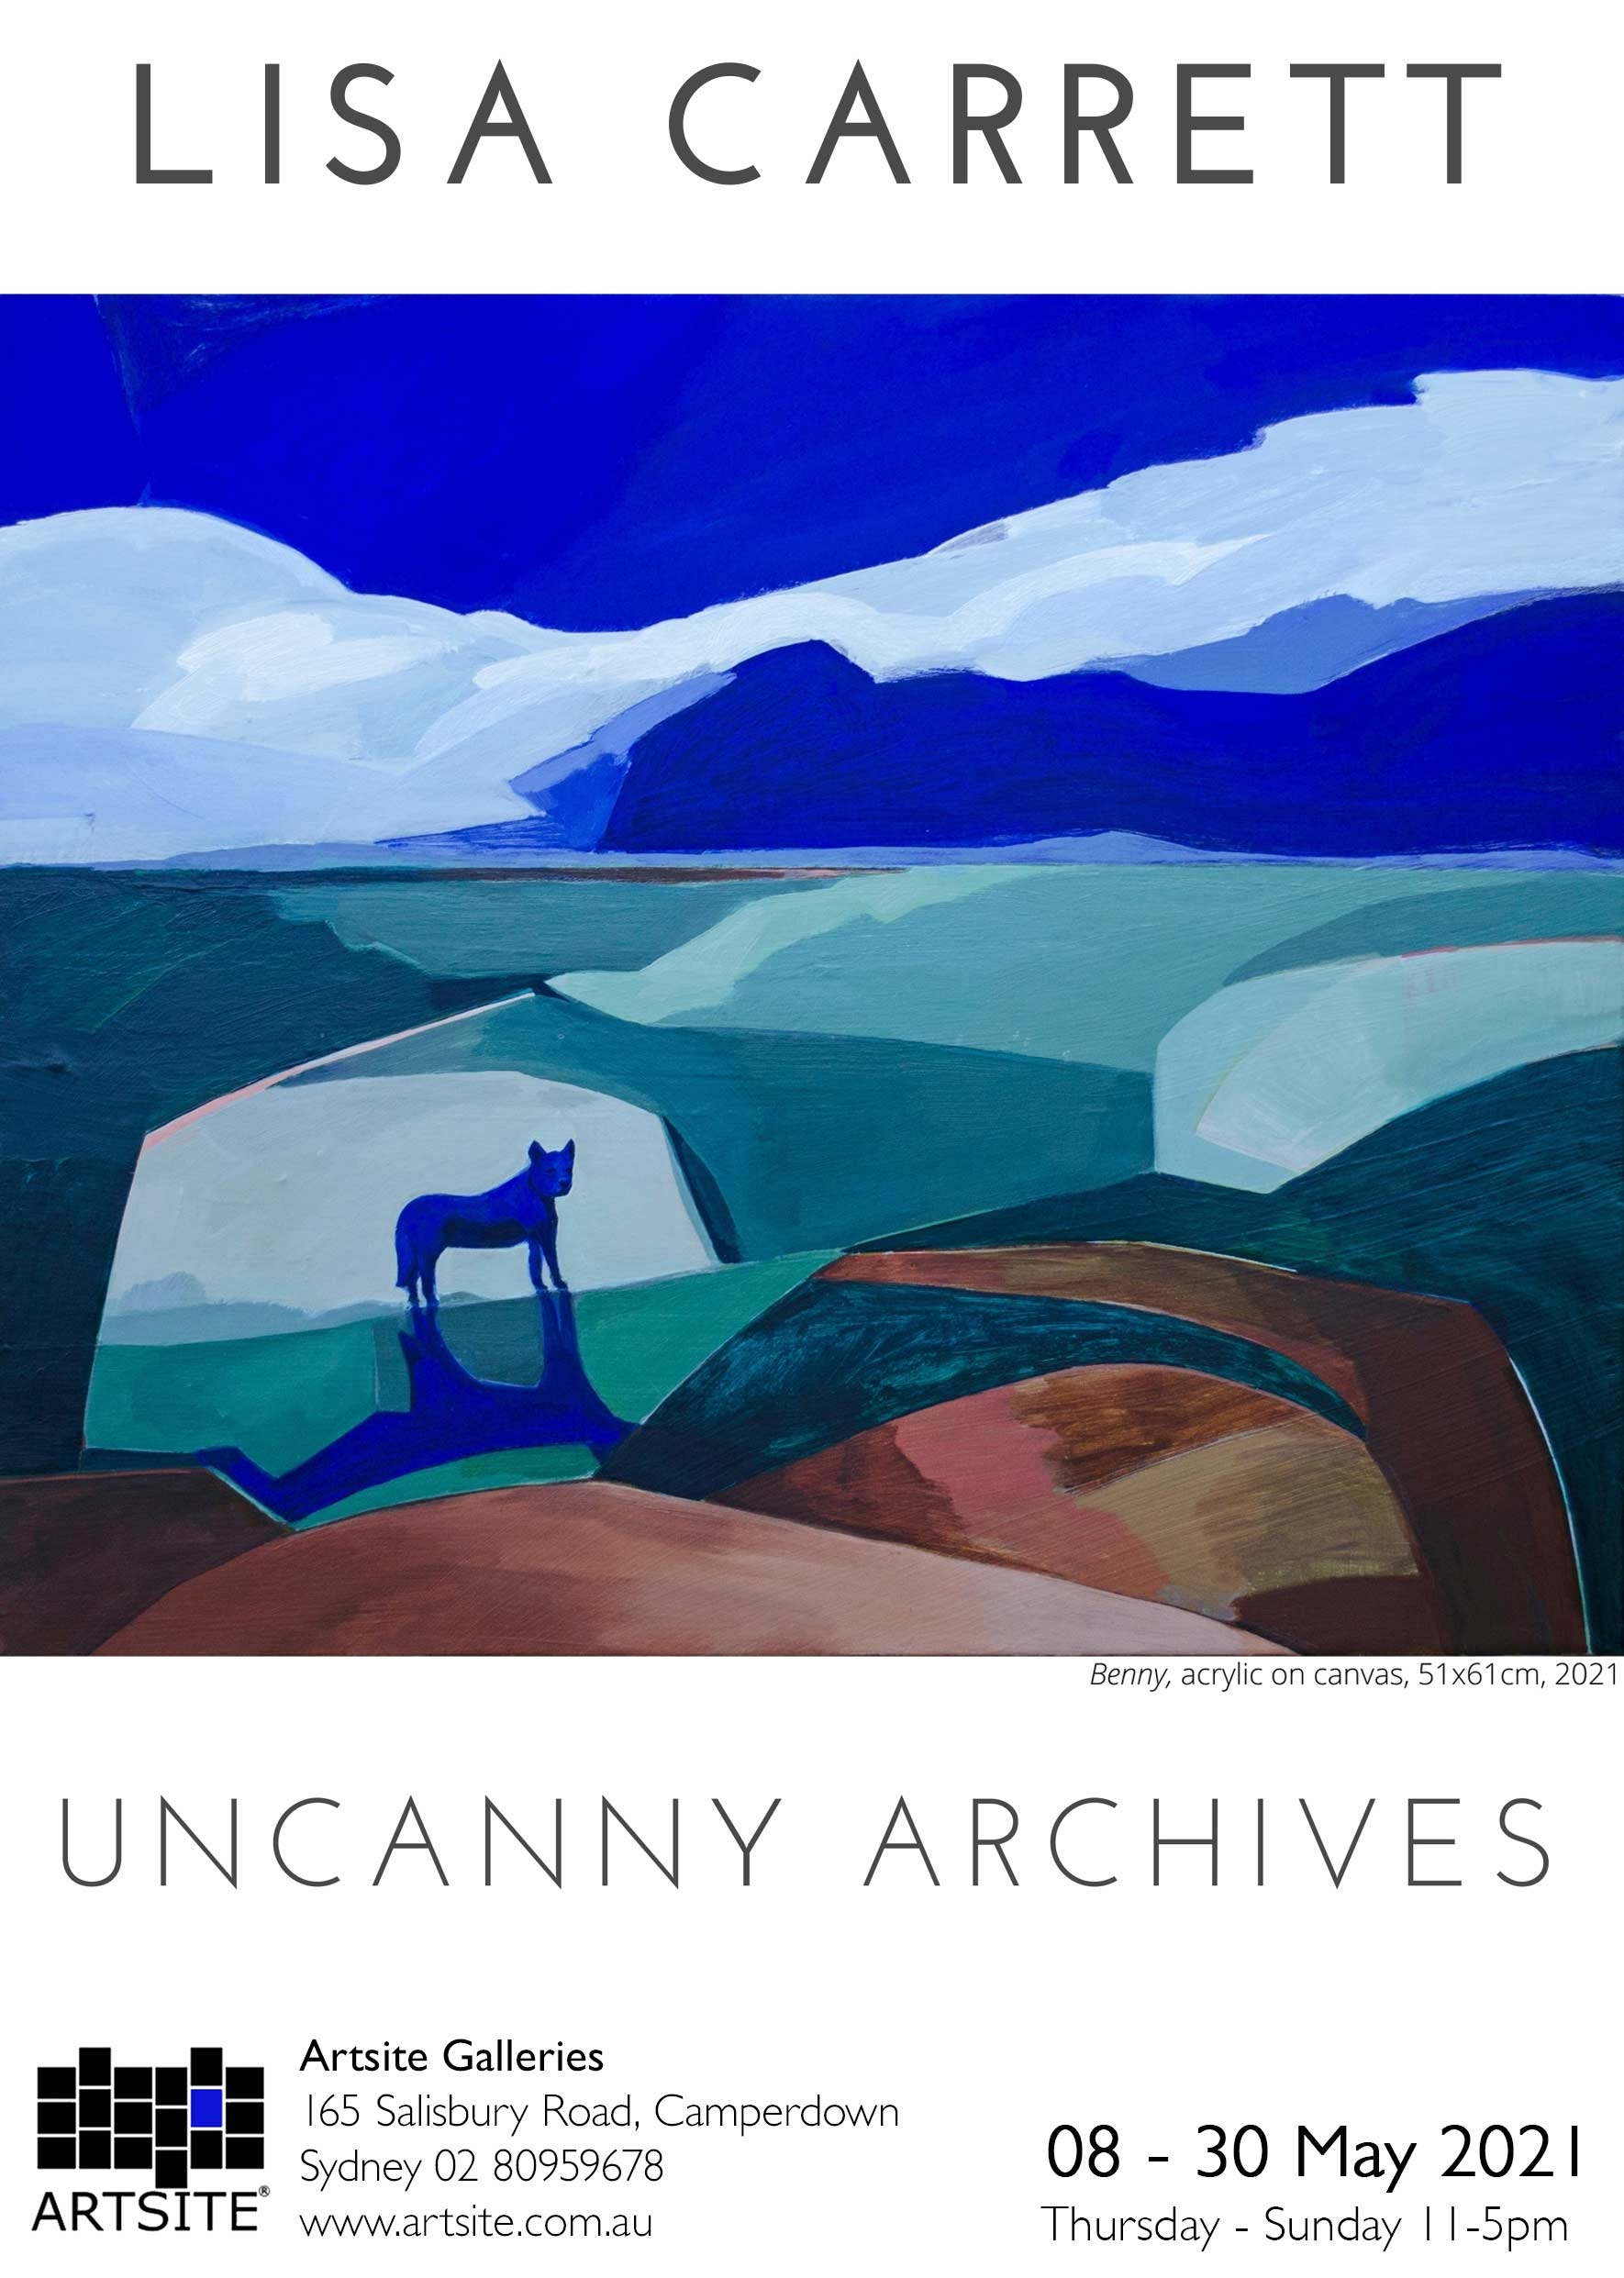 Artsite Galleries | Uncanny Archives | Lisa Carrett | Solo Exhibition | Thursday - Sunday 11-5pm | 08 -30  May 2021.